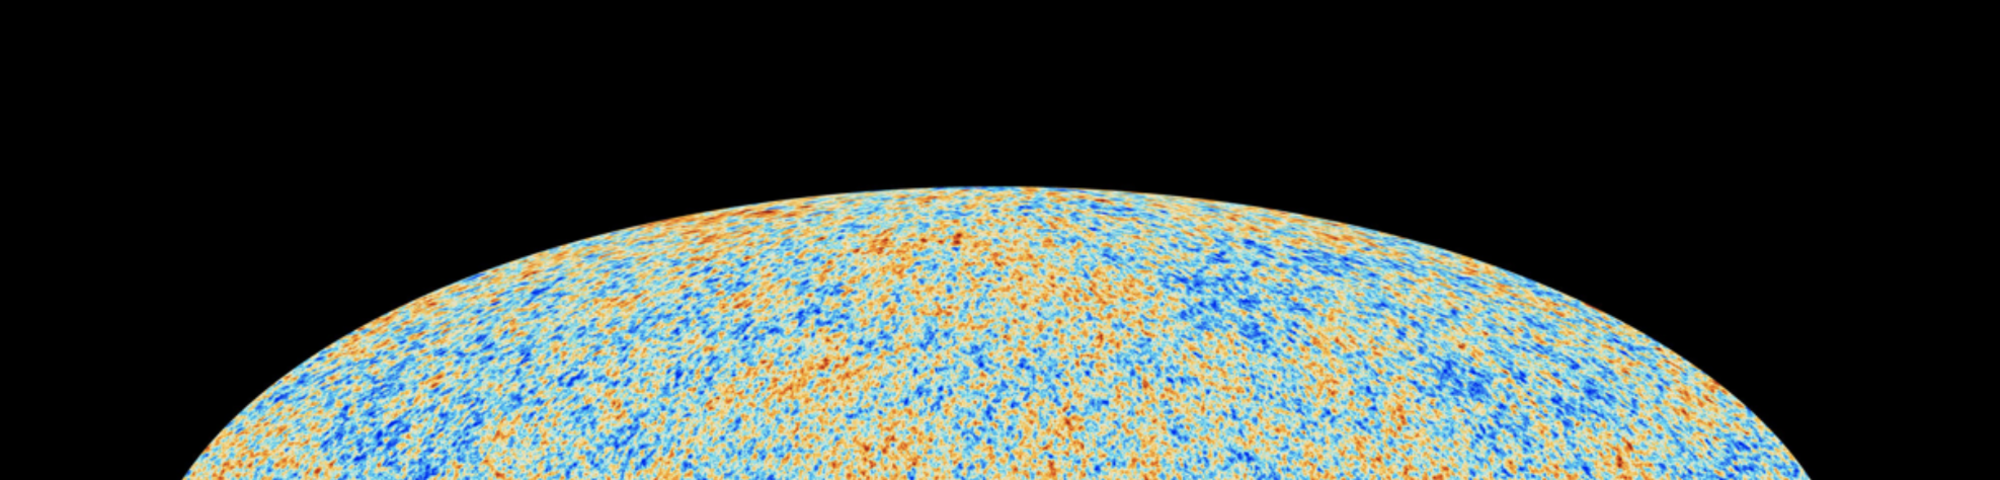 Roberto Trotta digital image of The Planck Collaboration, a CMB Map on a black background